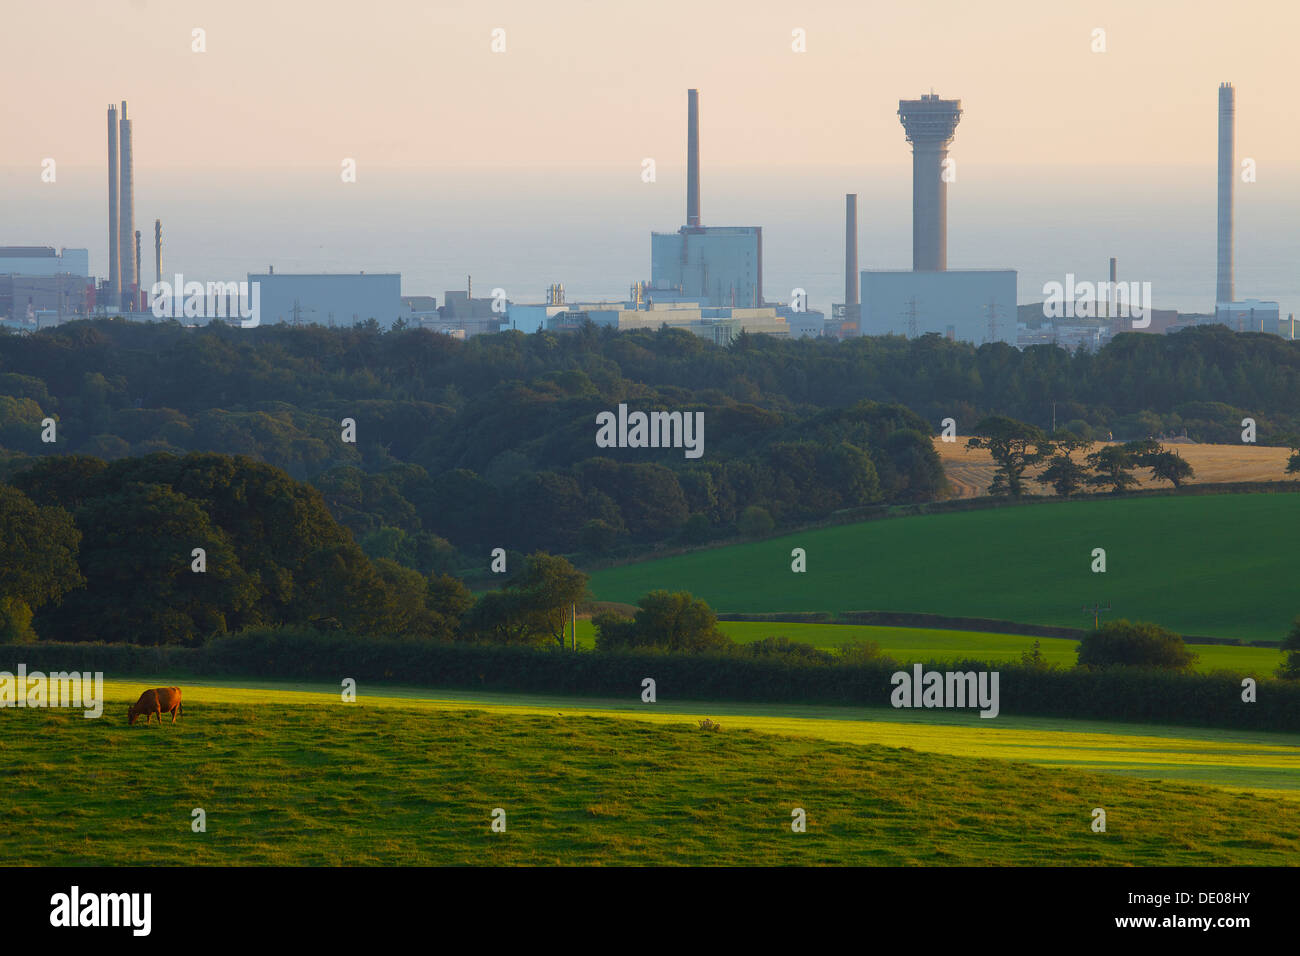 Sellafield nuclear power station in the evening light with a cow in field in the foreground Cumbria England United Kingdom - Stock Image